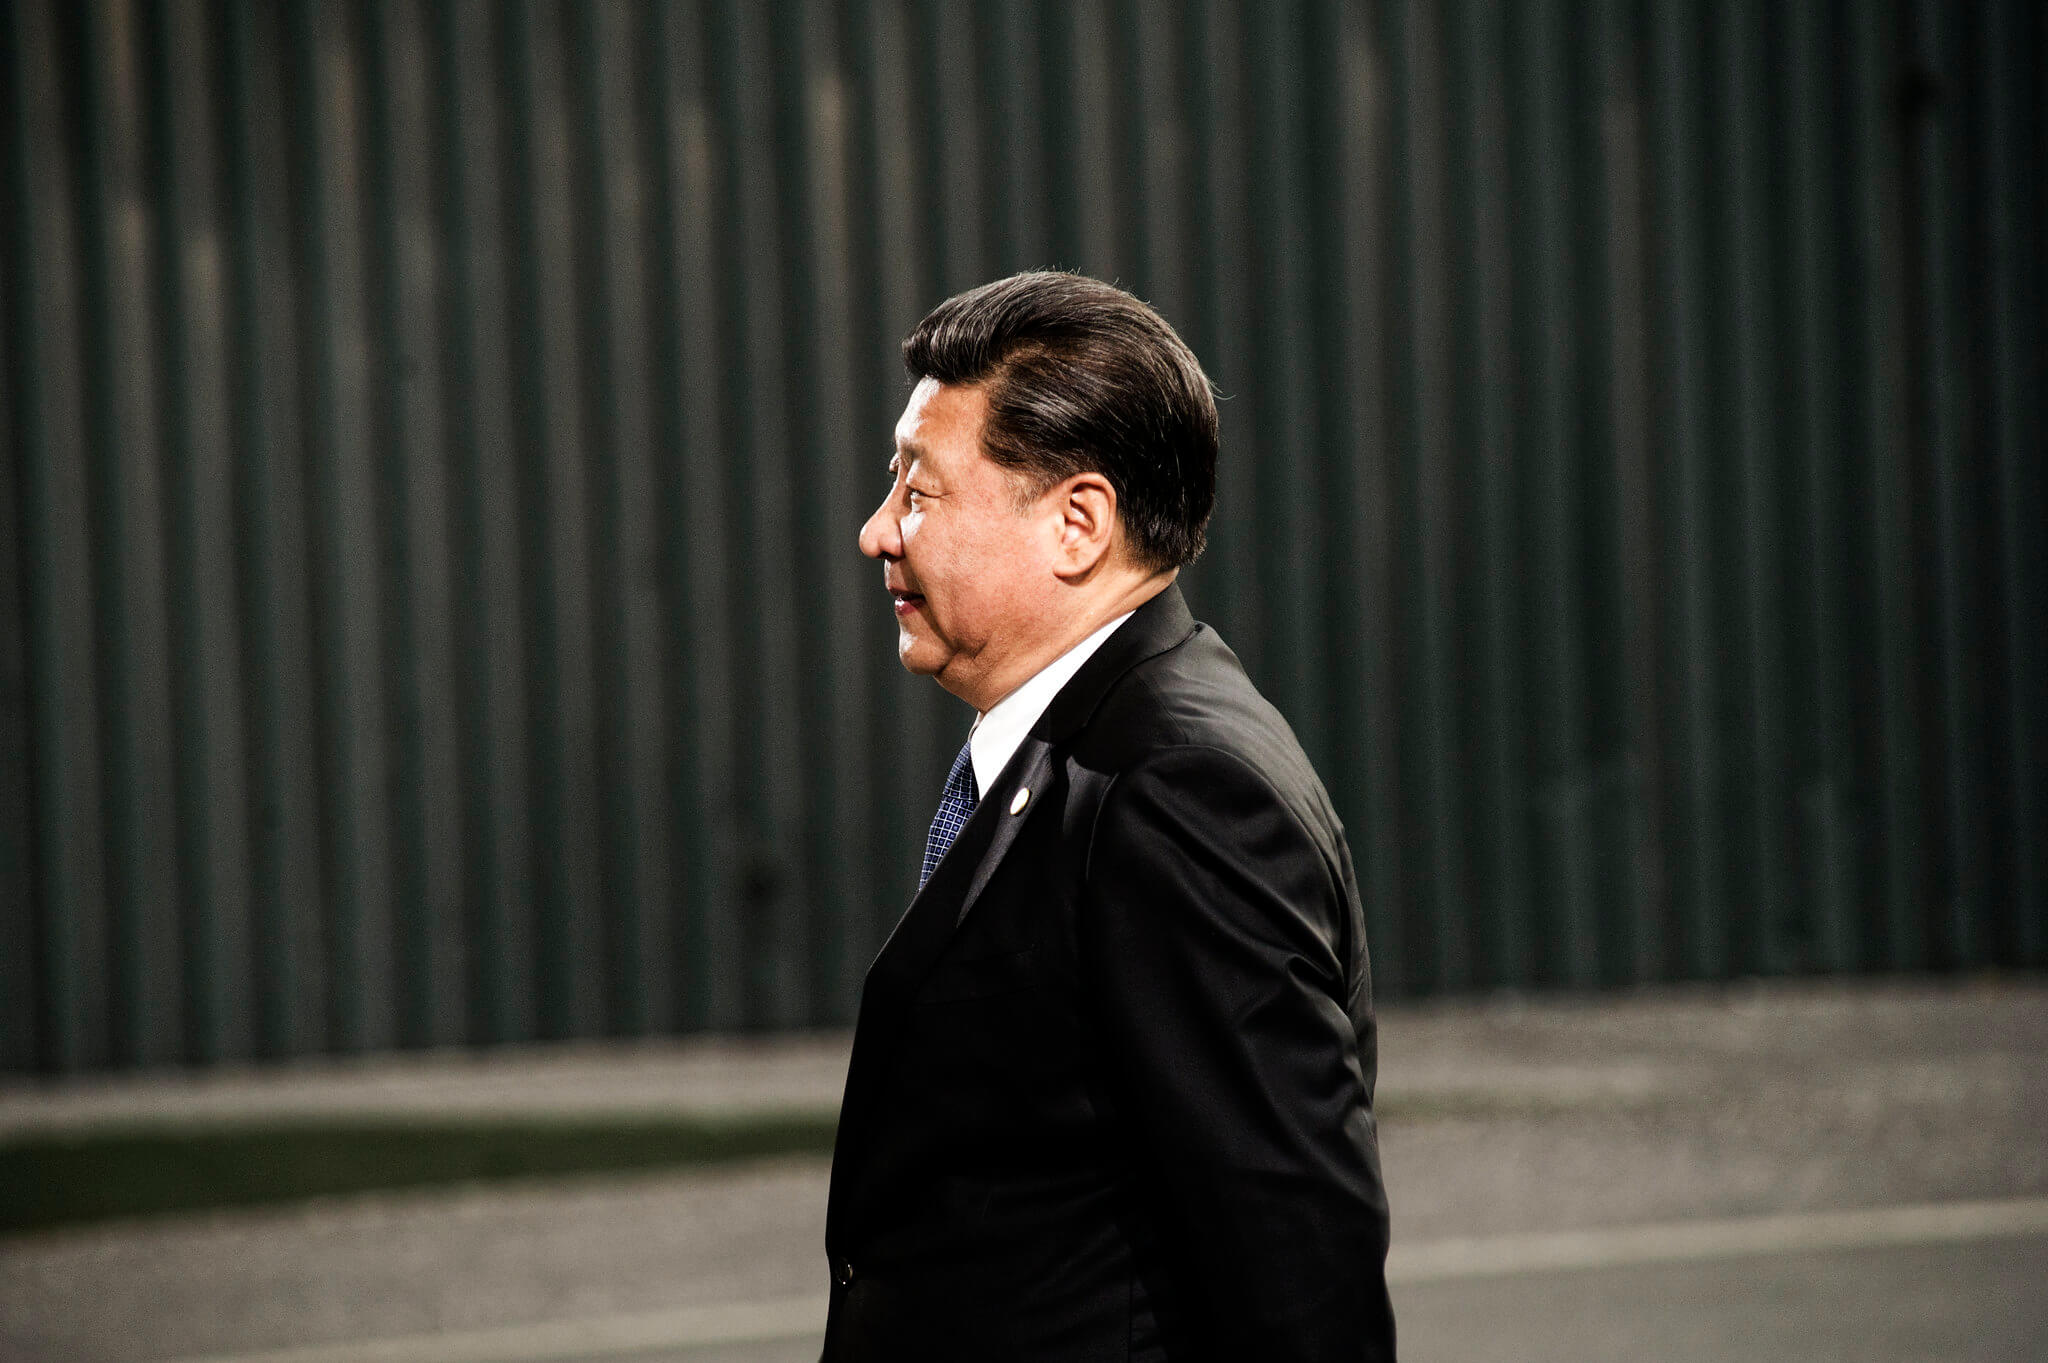 Chinese president Xi Jinping arrives at a meeting in Paris. © COP PARIS/Flickr